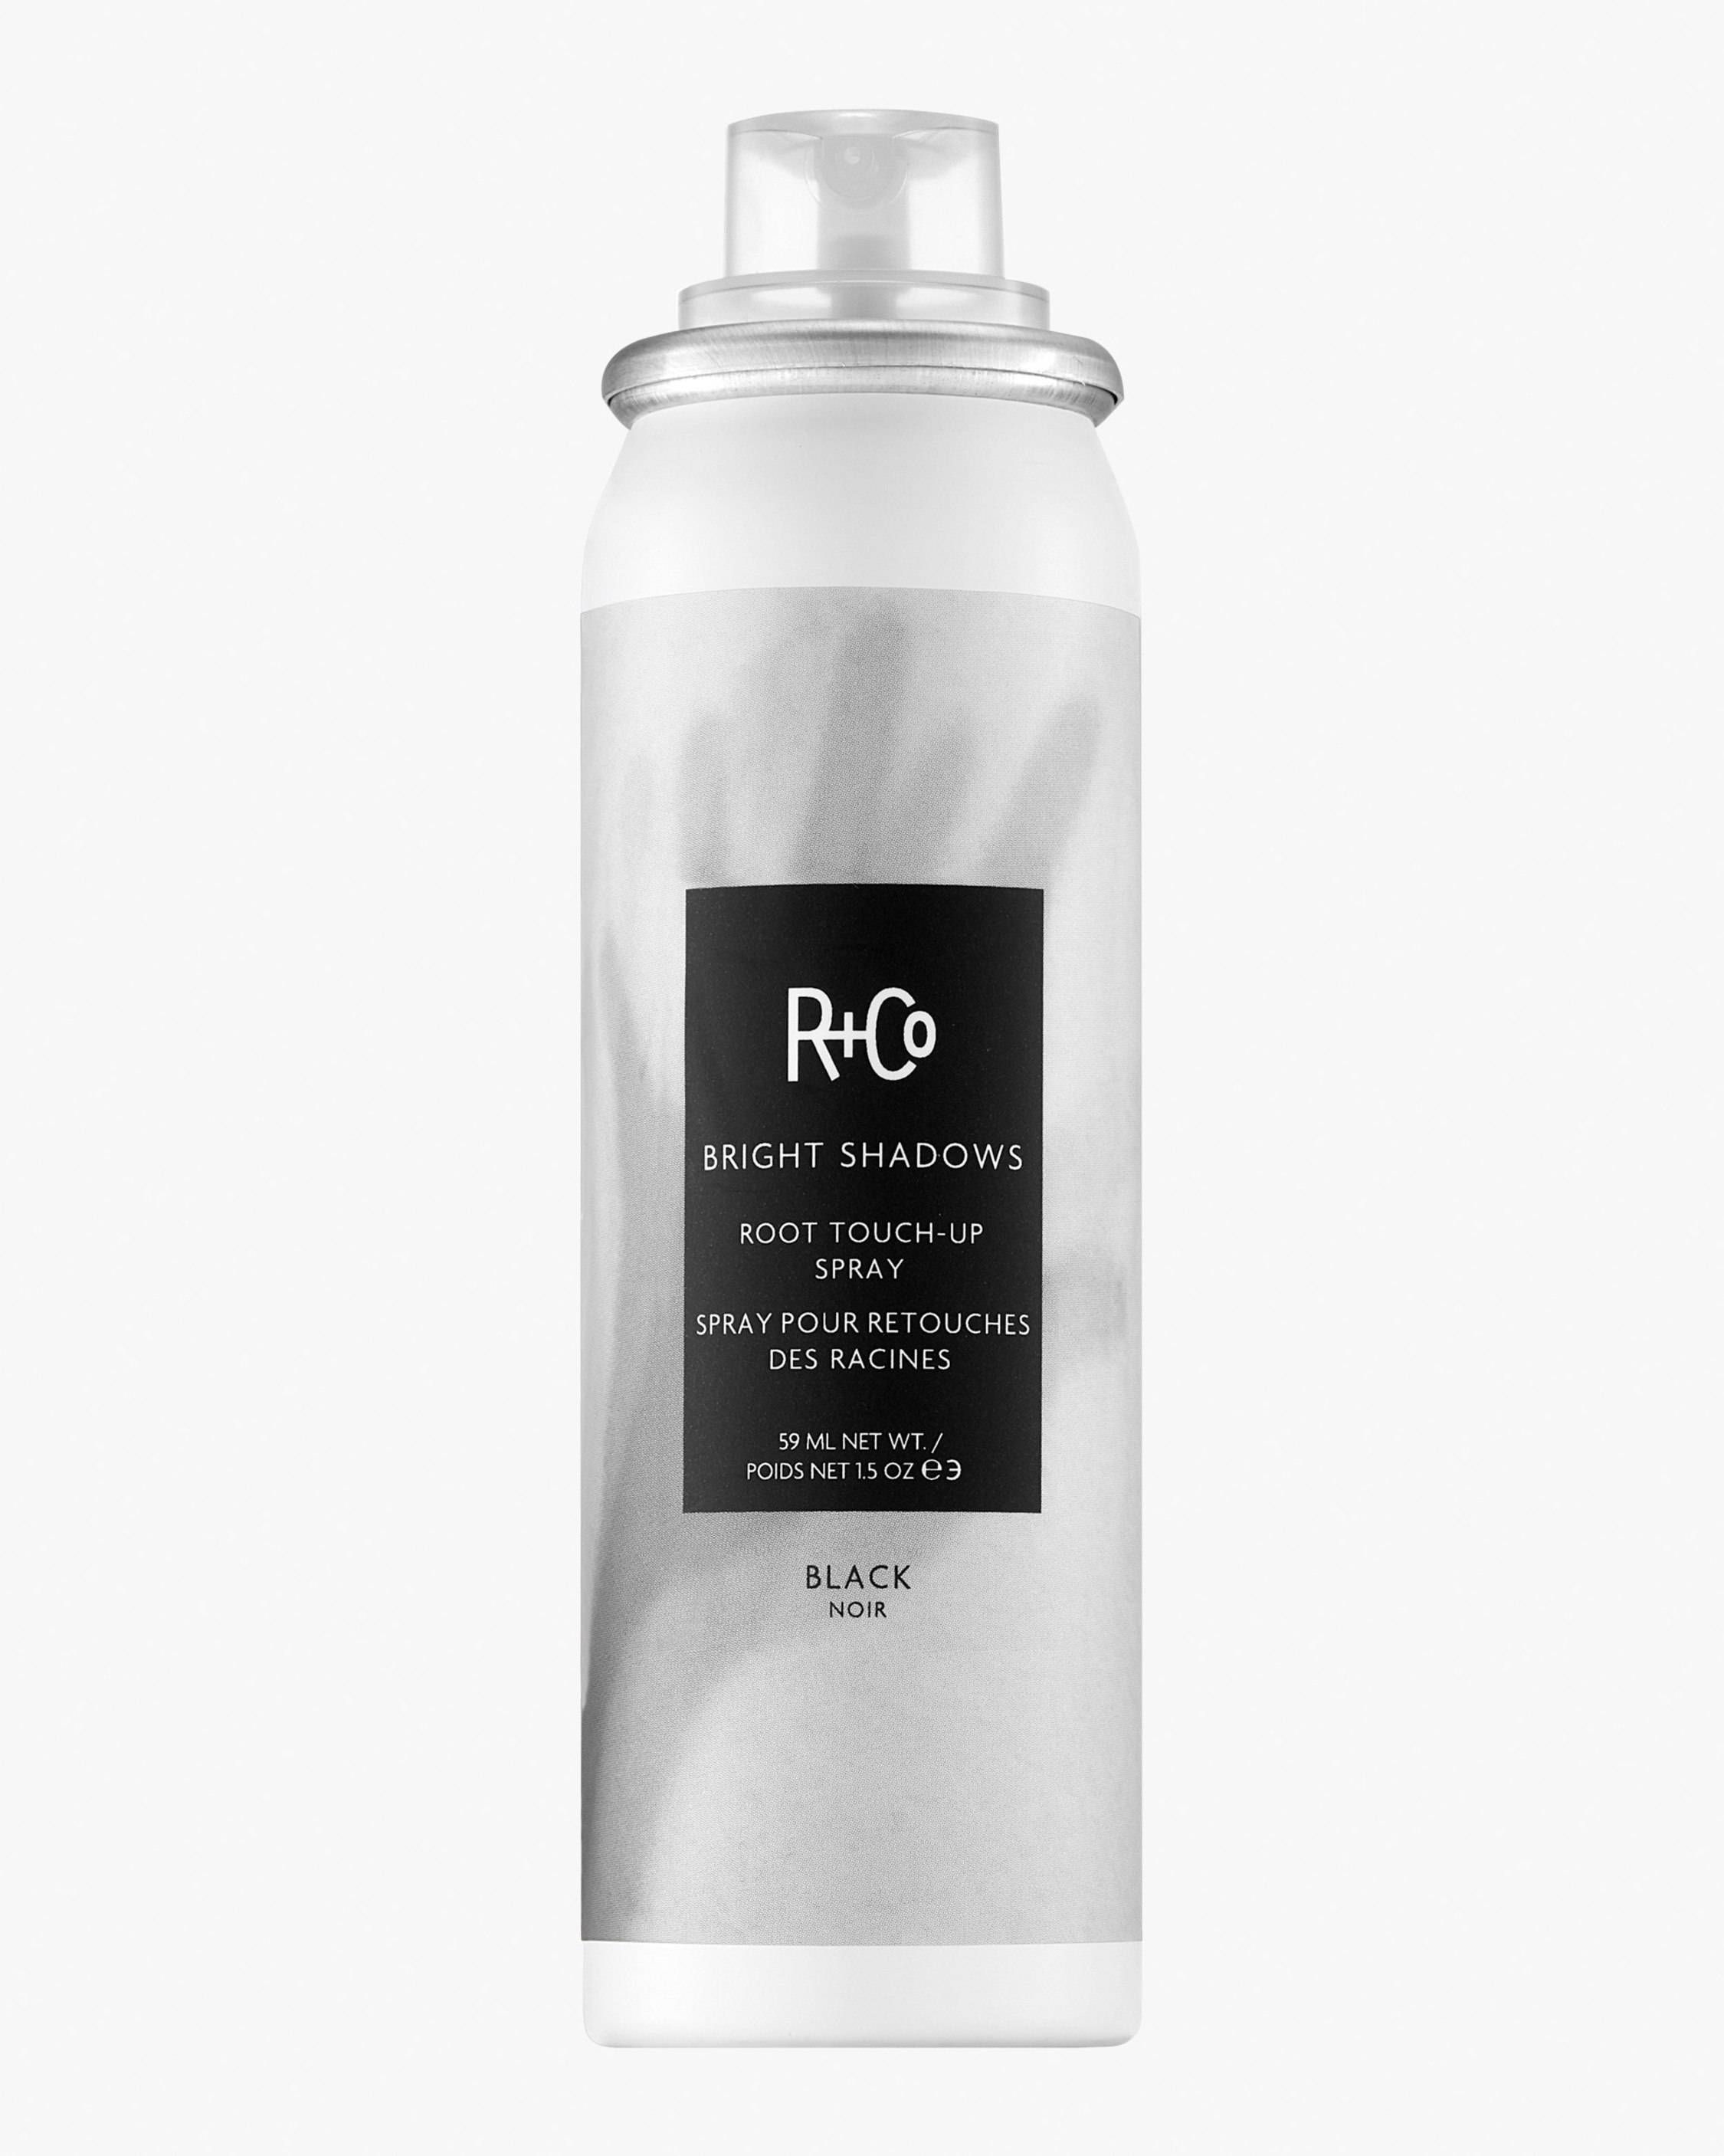 R+Co Bright Shadow Root Touch Up Spray 59ml 2